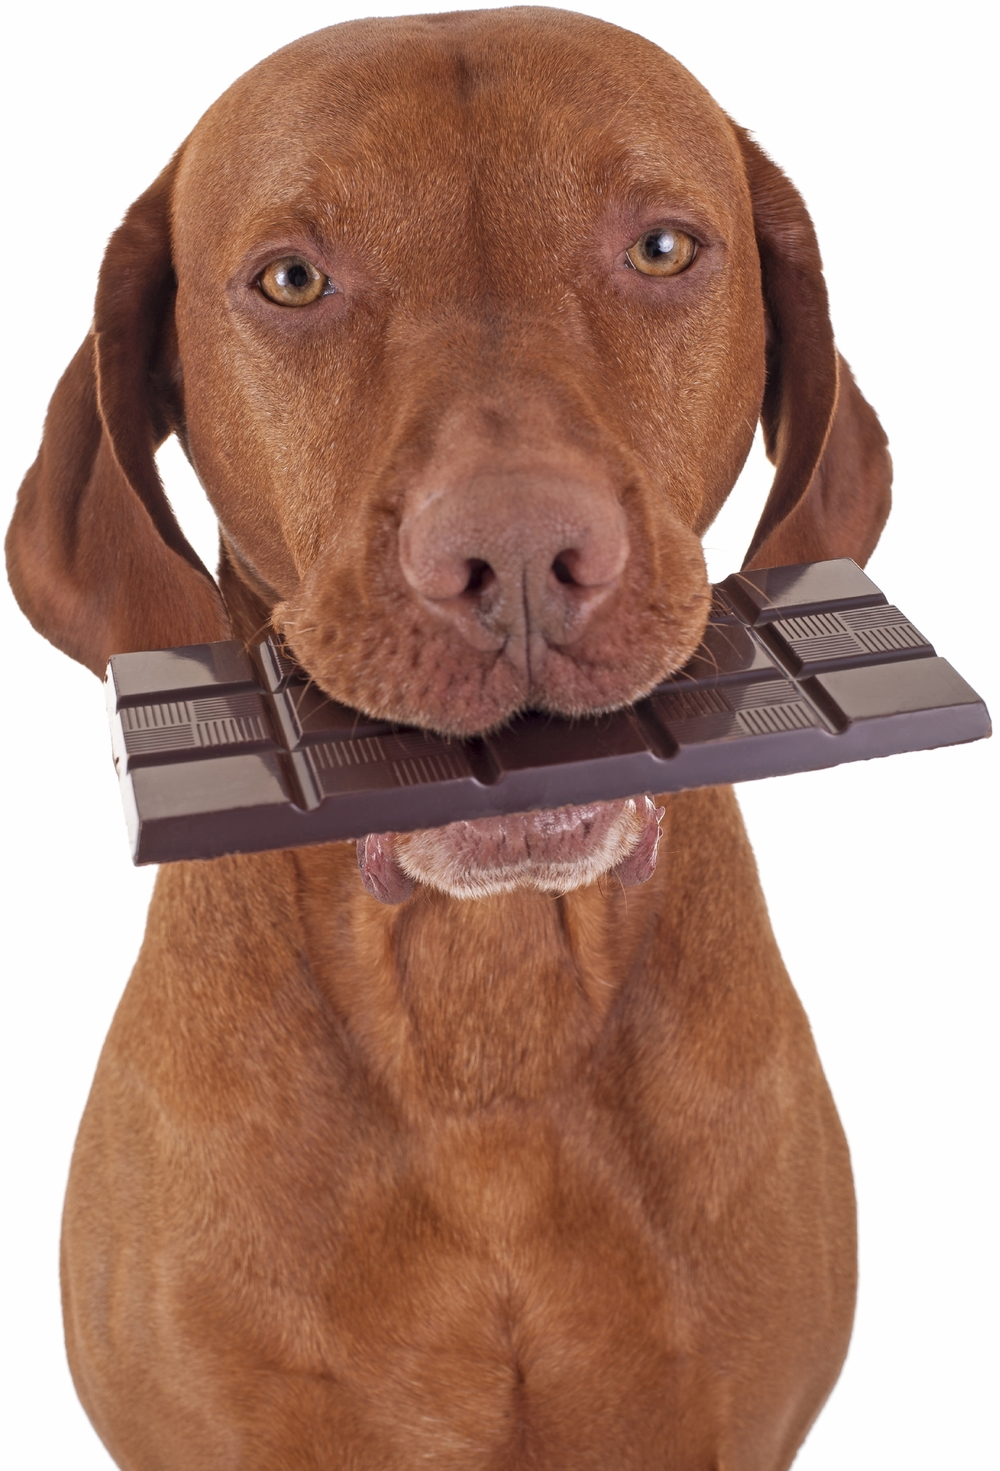 Is Chocolate Bad For Dogs.jpg